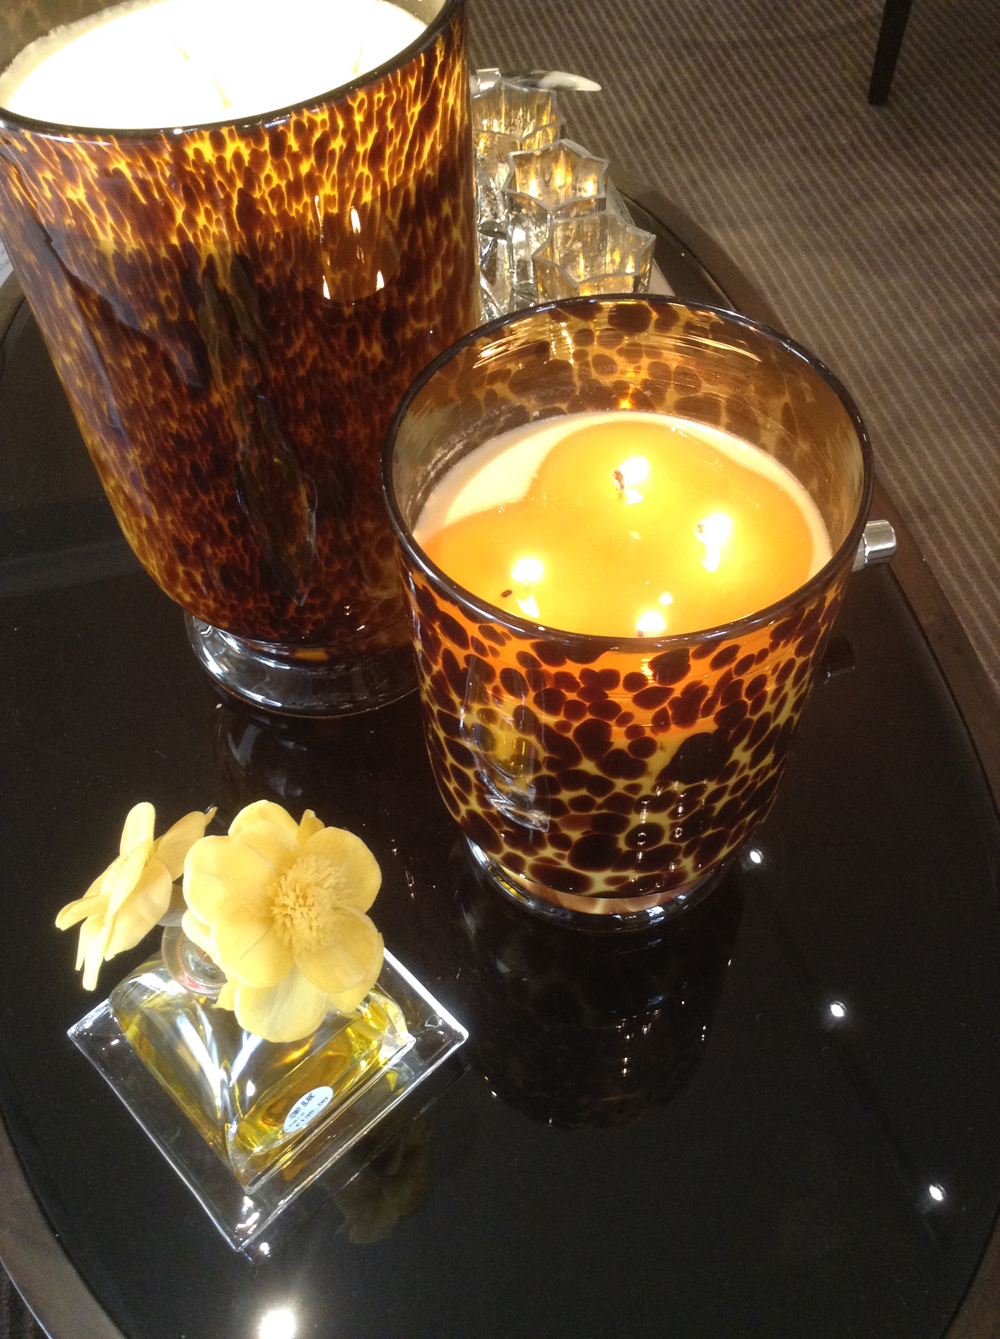 New ideas on accessorising are always arriving. These fabulous candles just in from Australia take some beating